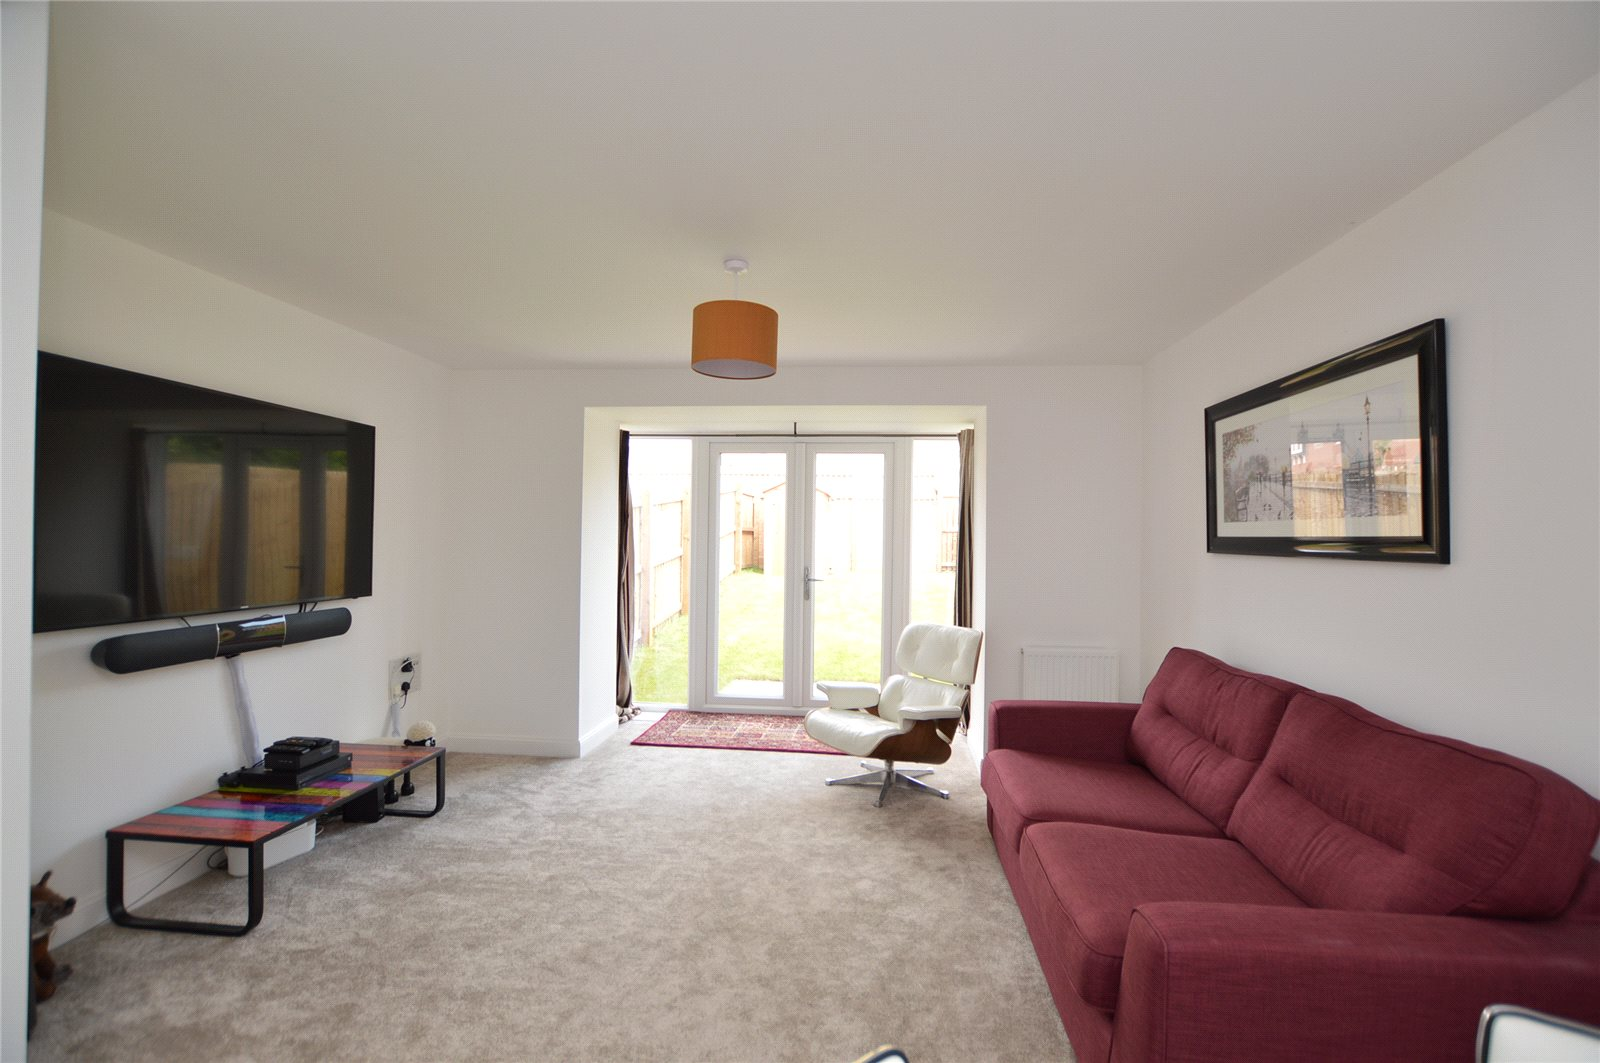 Property for sale in Morley, spacious living room